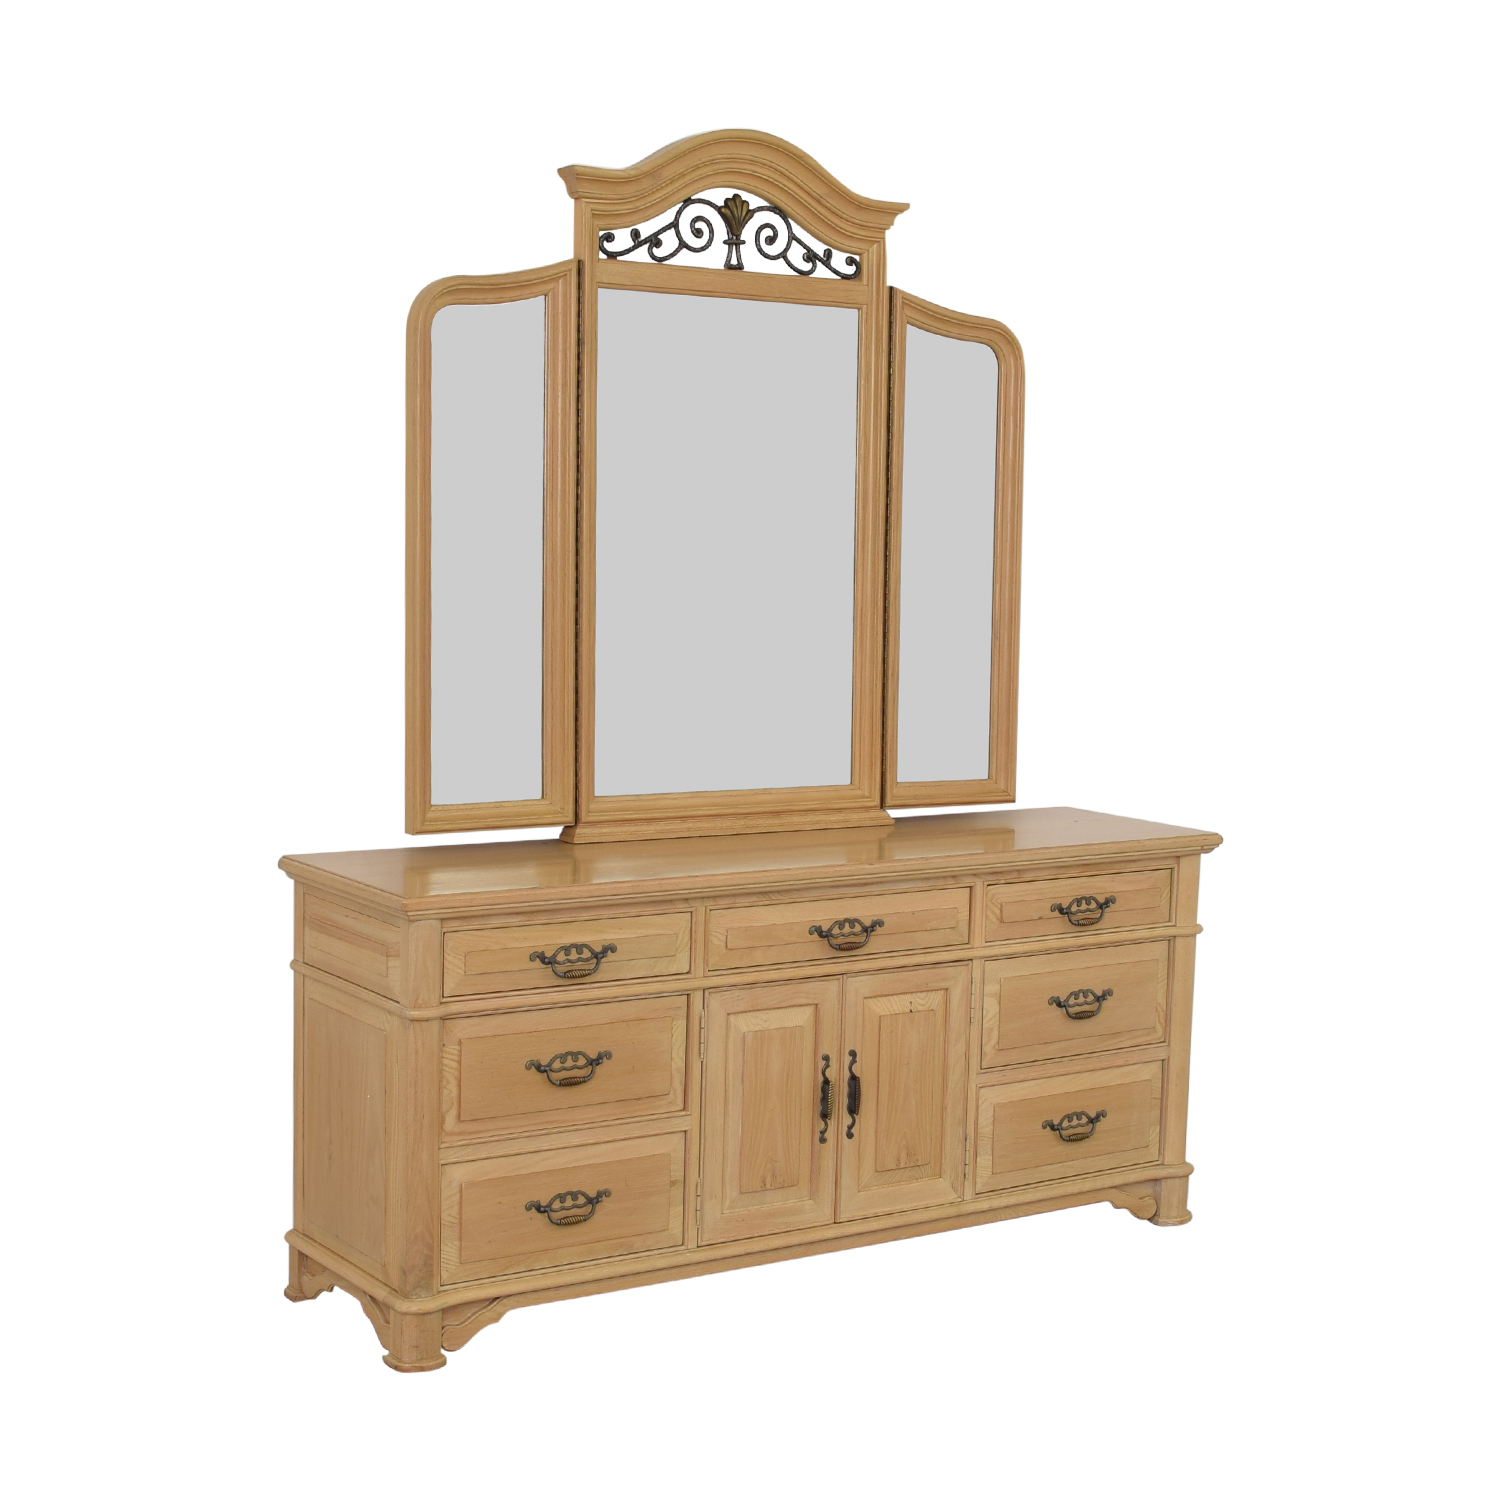 Thomasville Thomasville Triple Dresser with Mirror Dressers